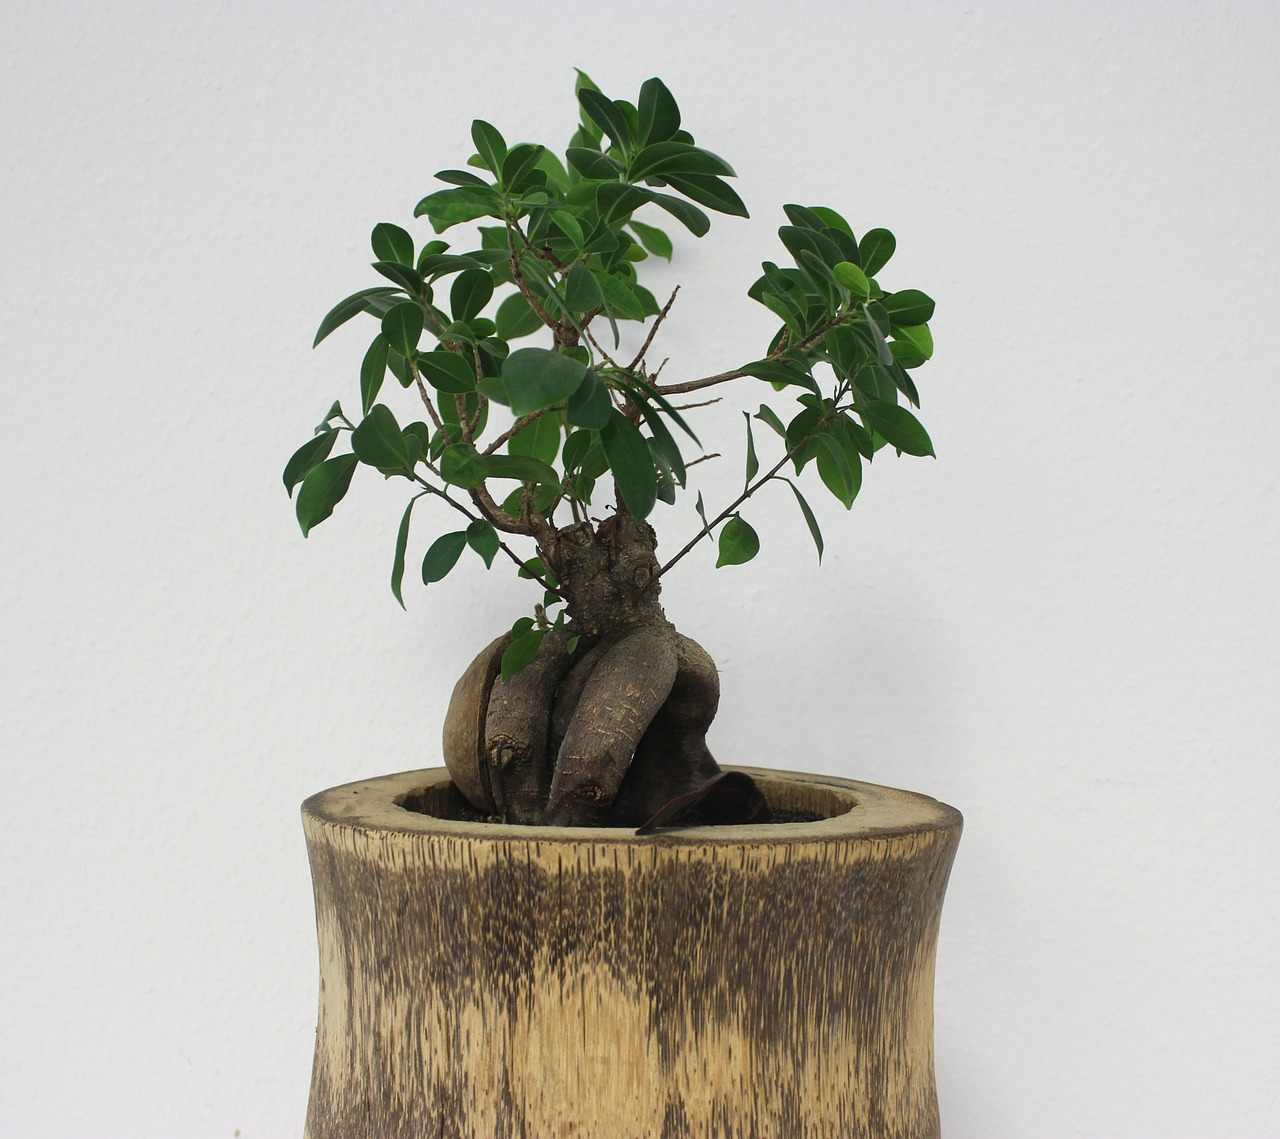 Download Free Photo Of Bonsai Tree Office Green Plant From Needpix Com